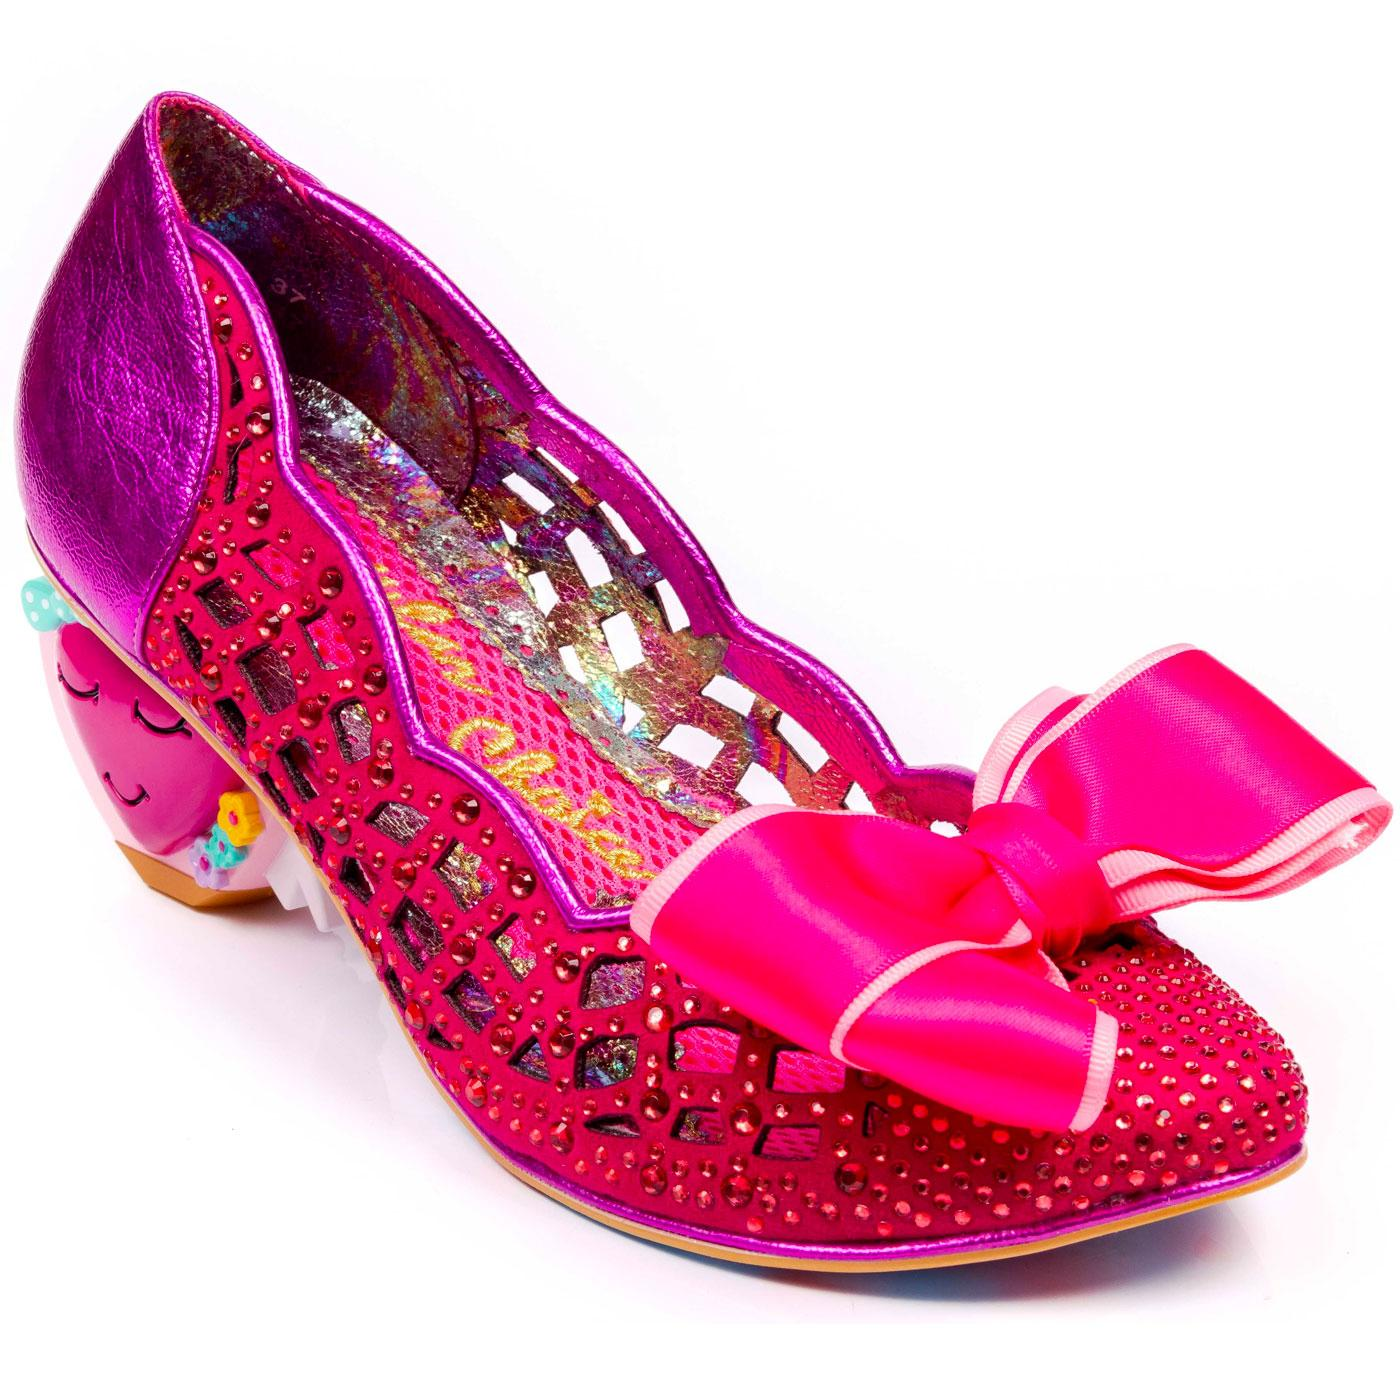 Liefde IRREGULAR CHOICE Cut Out Heart Heels Pink